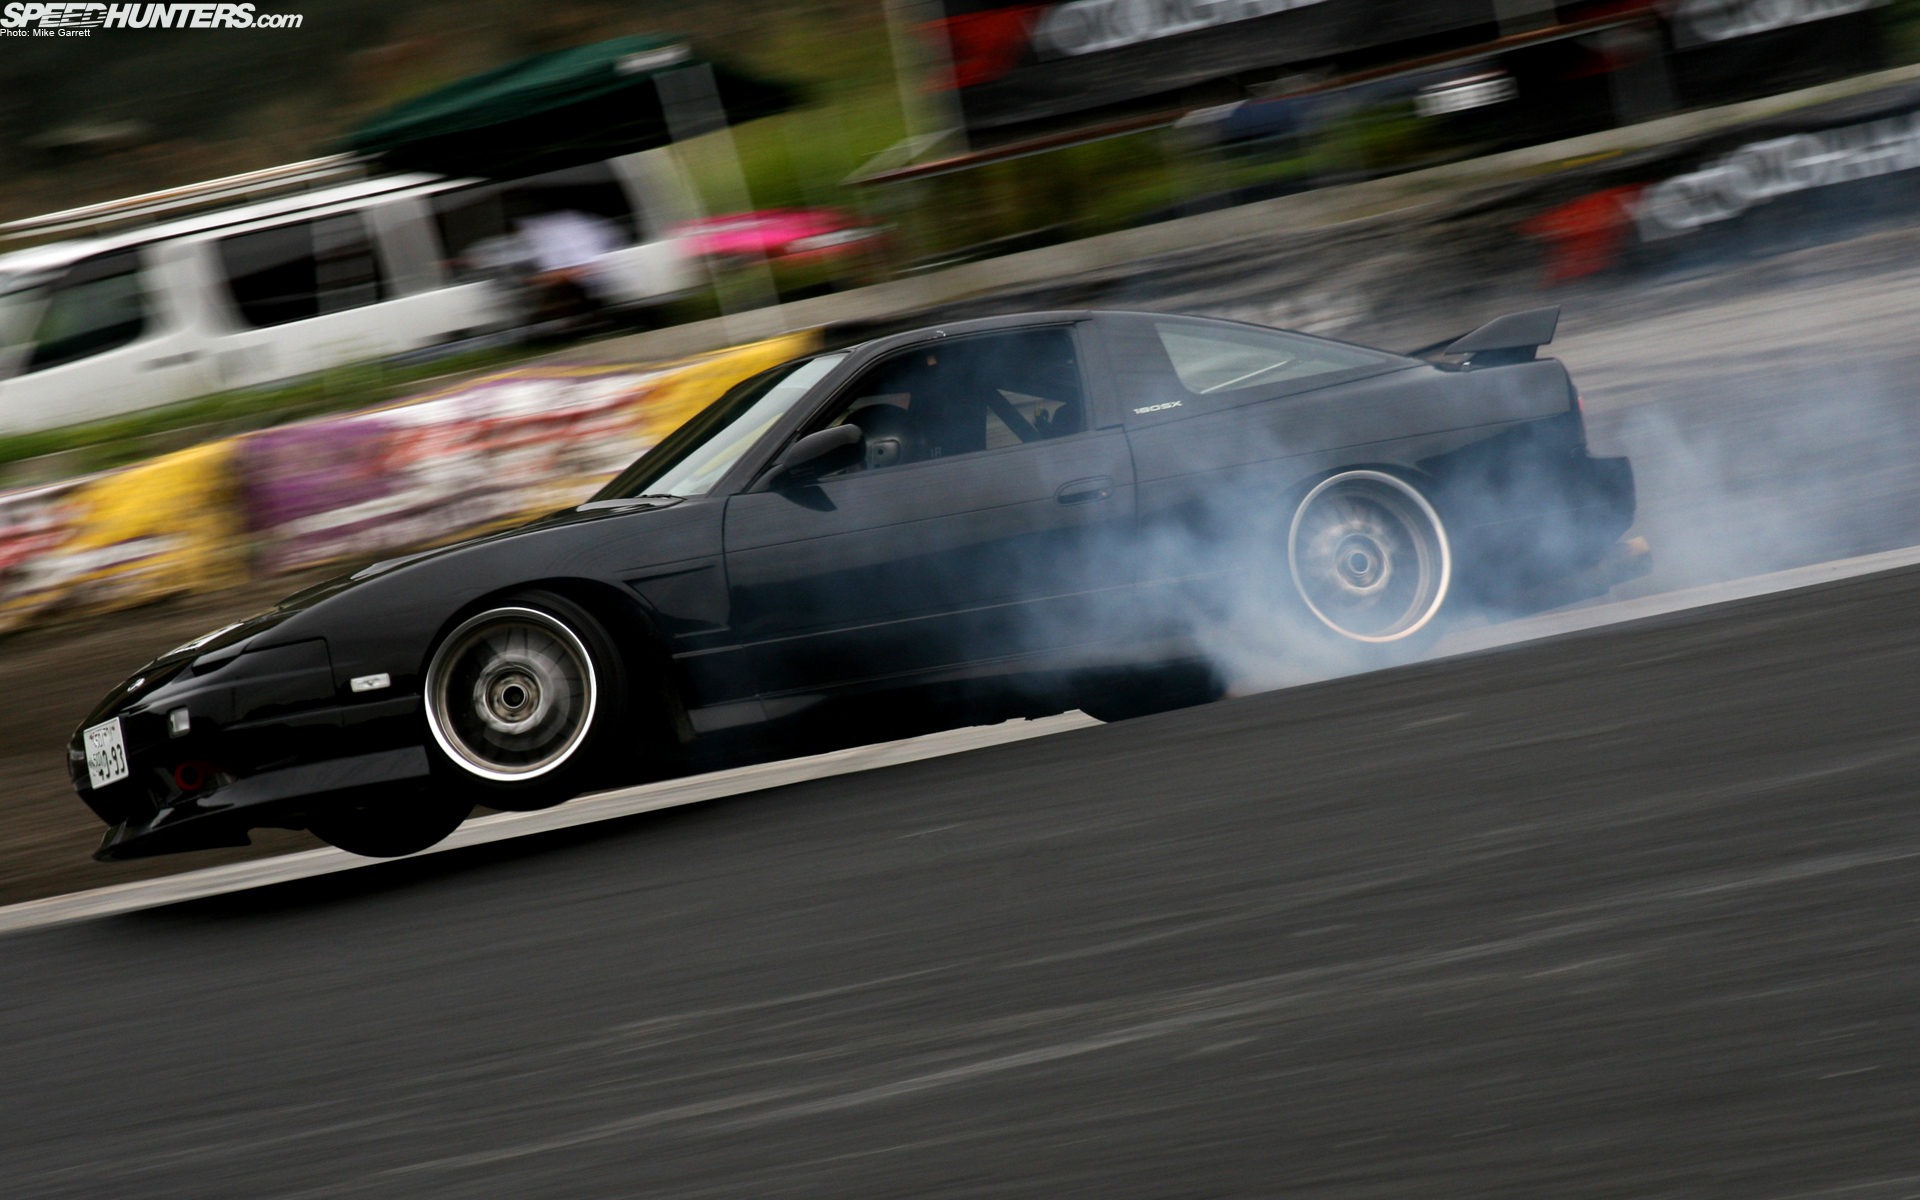 Drifting Nissan 180SX nissan HD Wallpaper